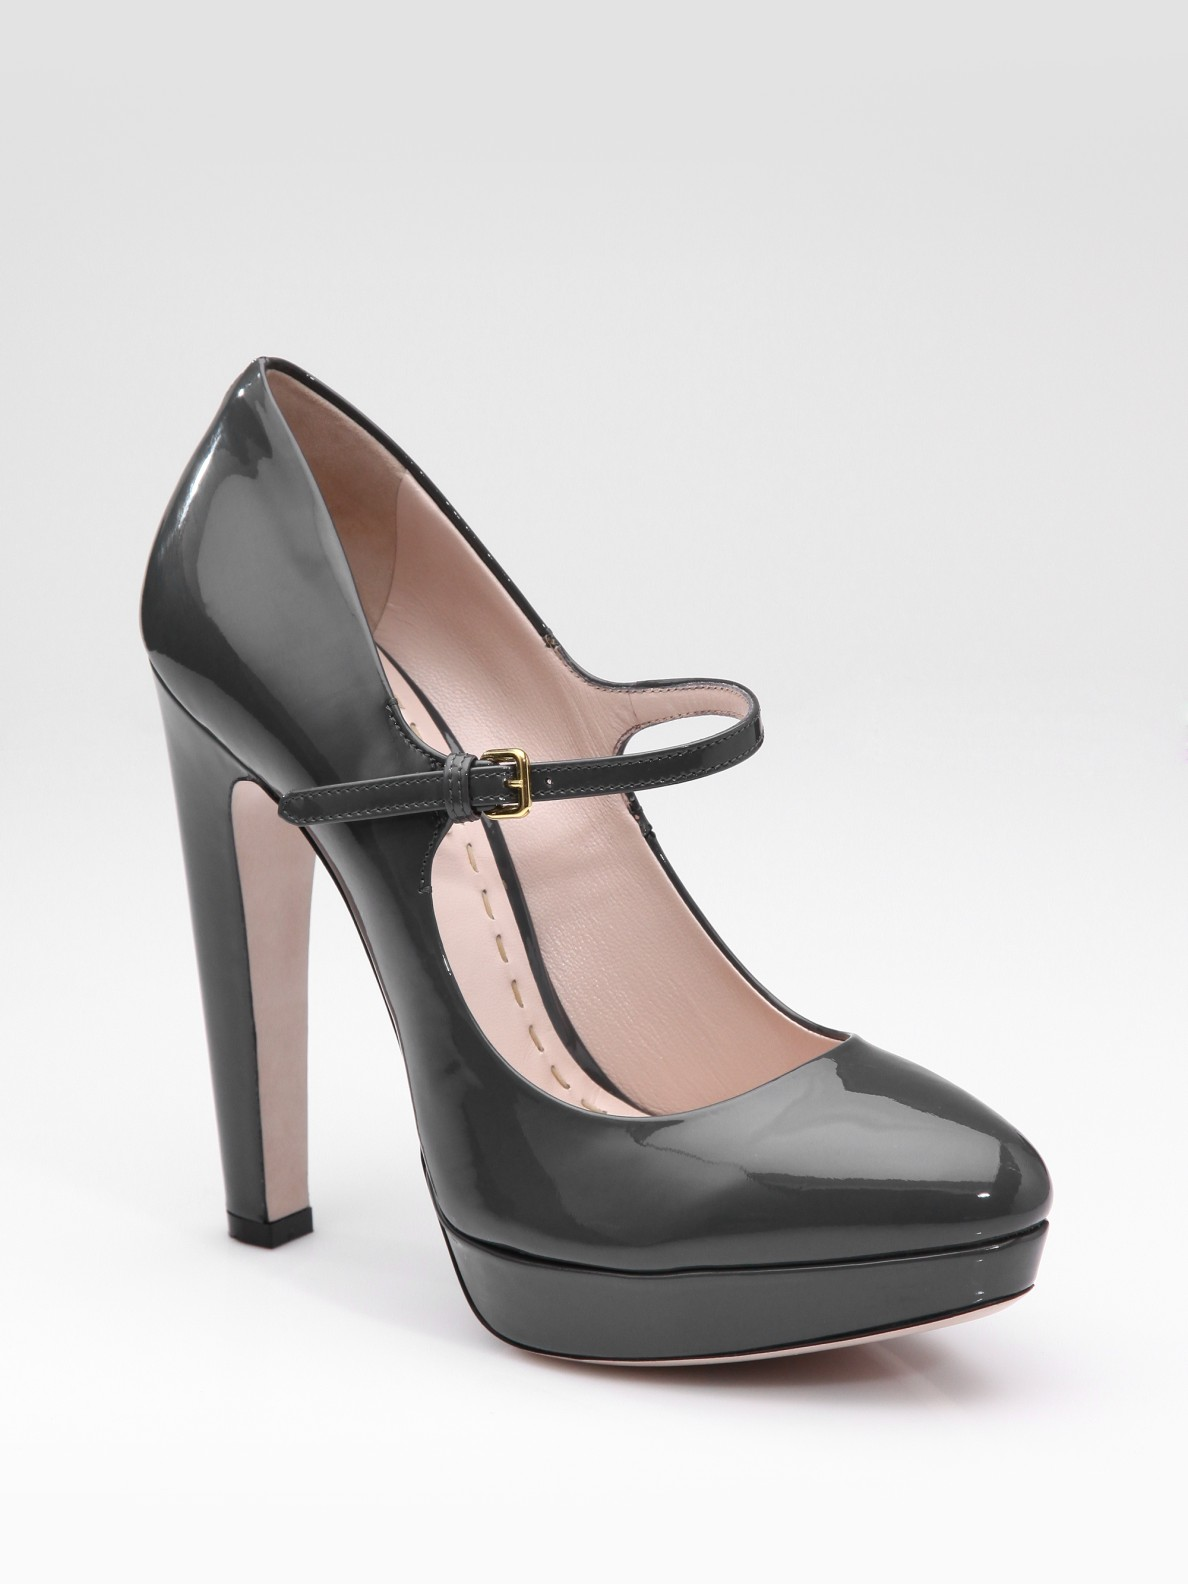 miu miu patent mary jane pumps in gray grey lyst. Black Bedroom Furniture Sets. Home Design Ideas